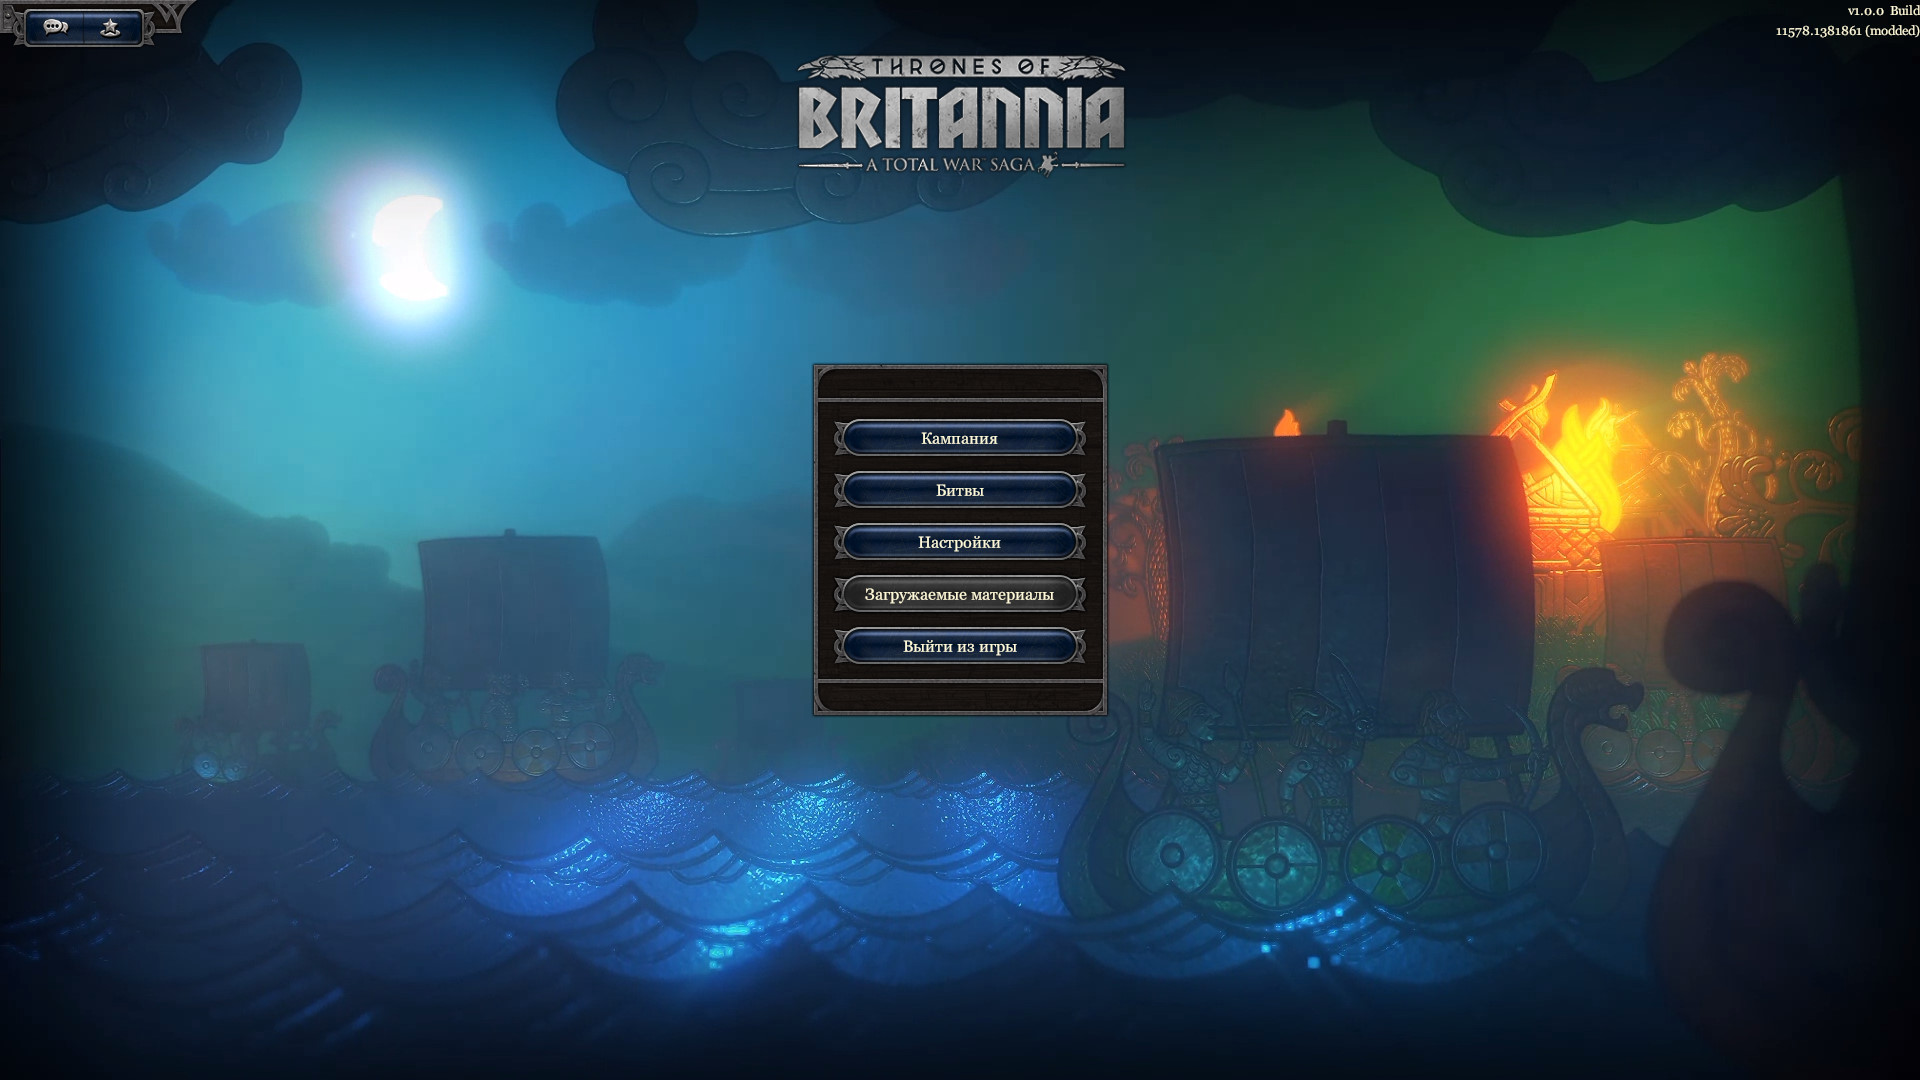 Total War Saga: Thrones of Britannia [v1.0.11578] (2018/PC/Русский), RePack от dixen18